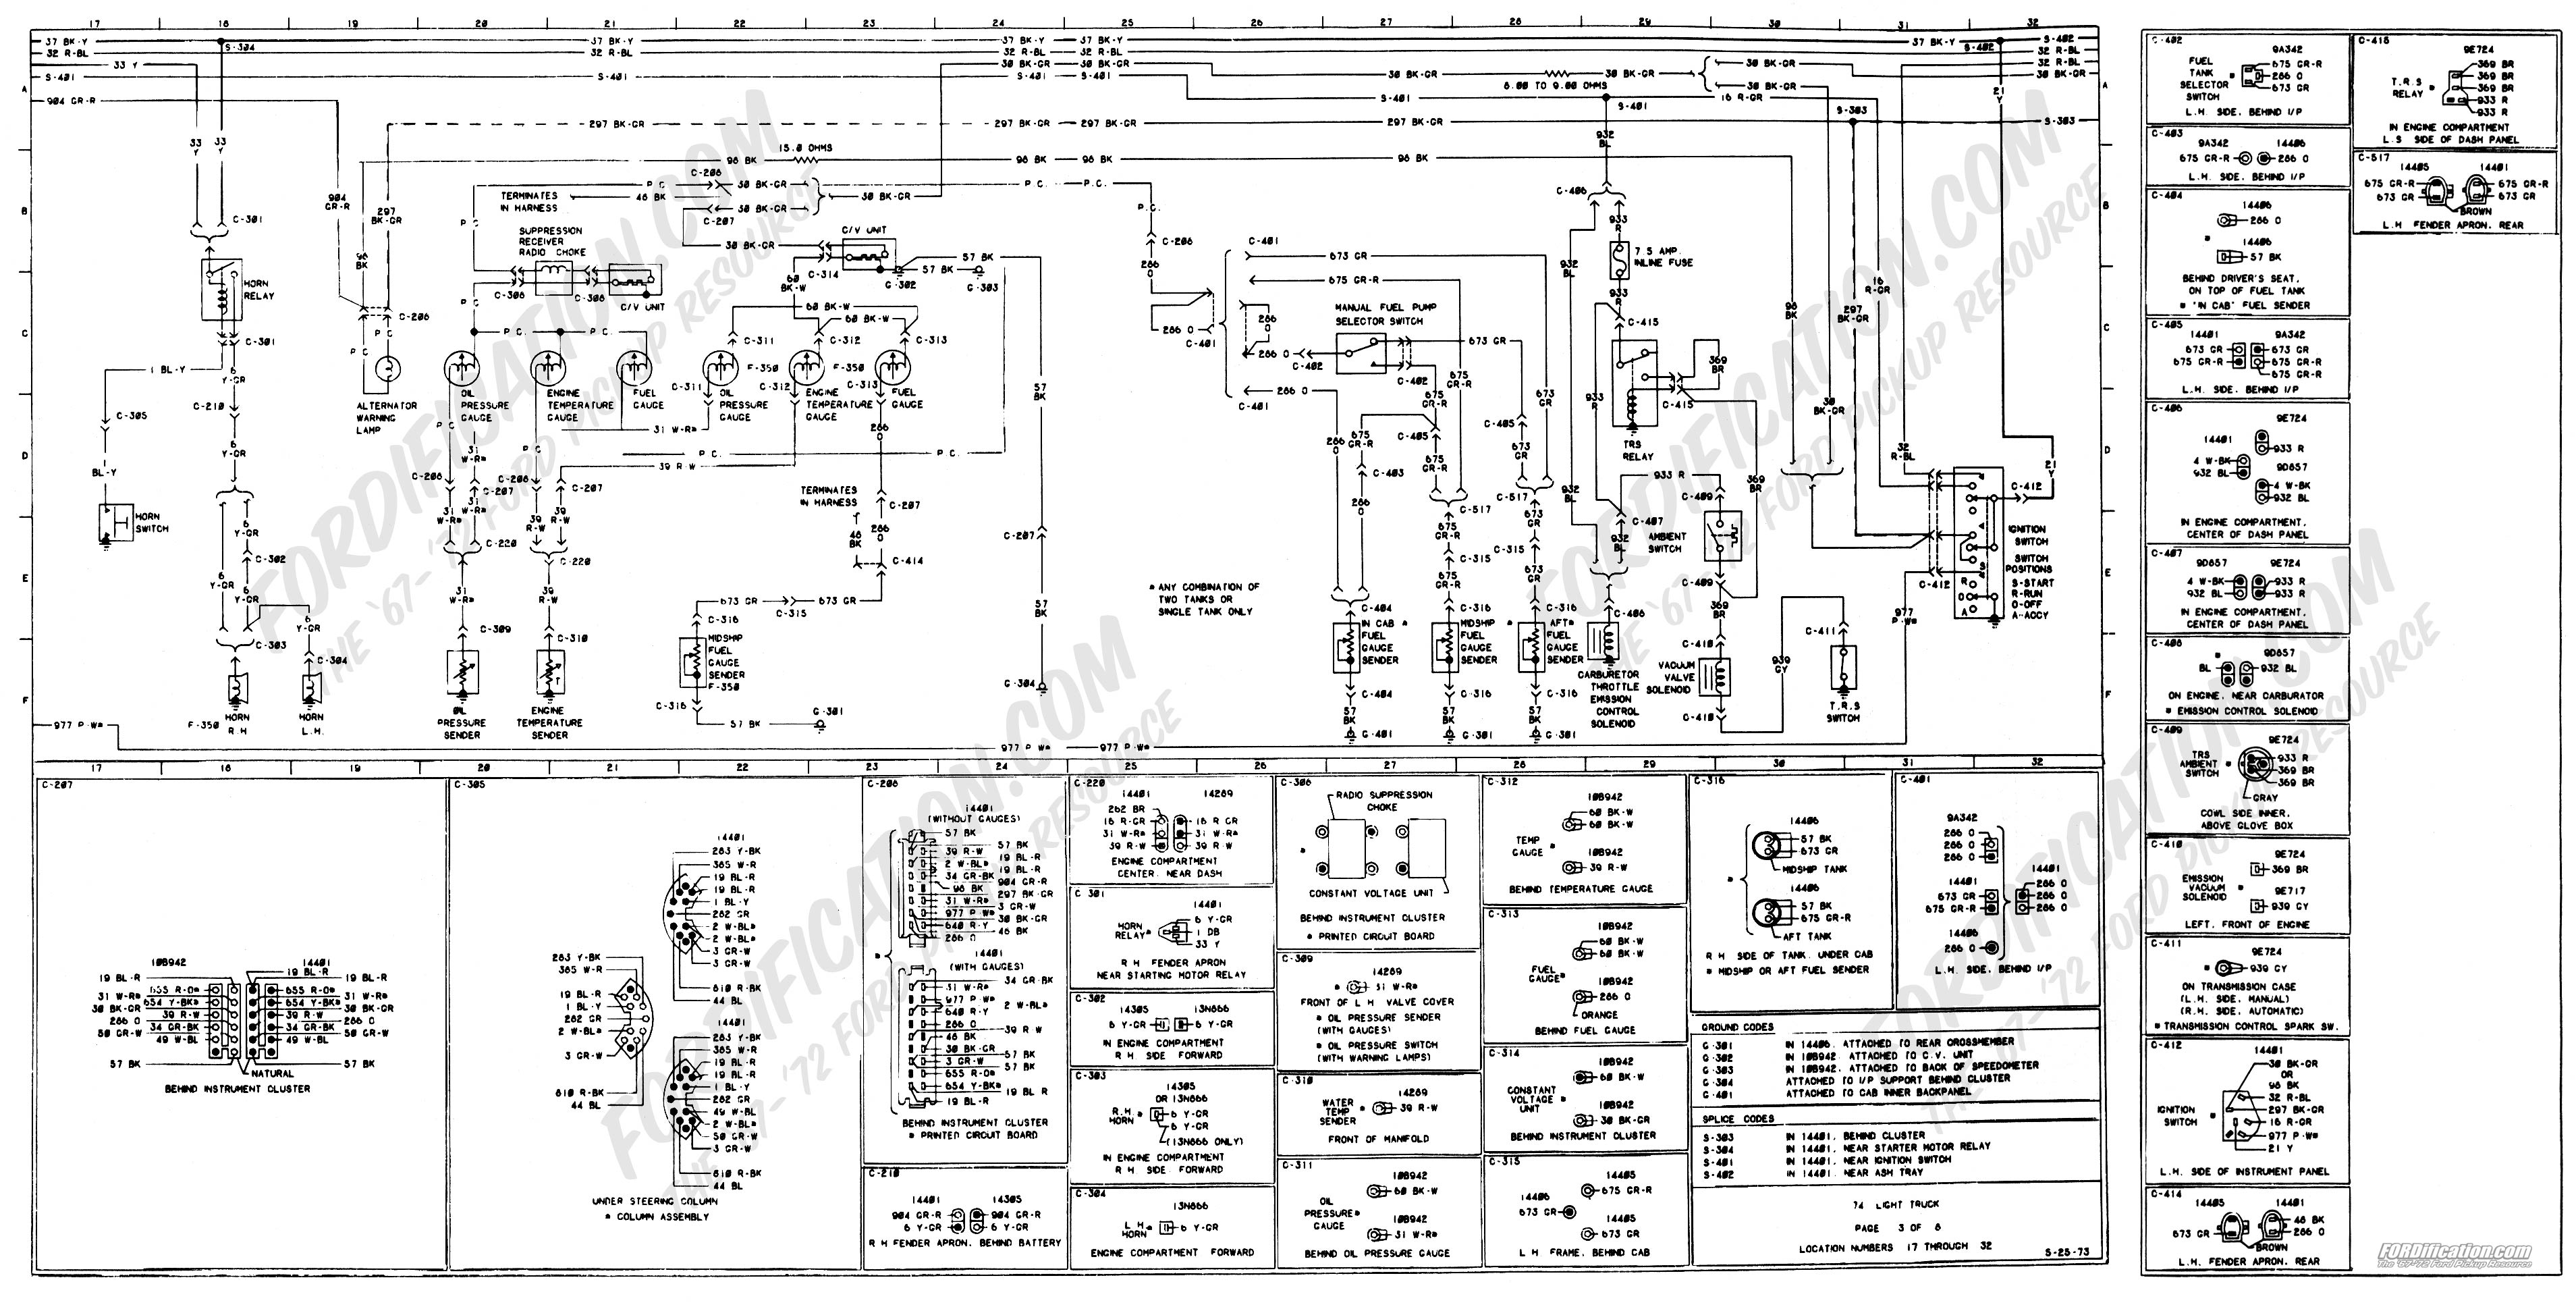 2008 Ford F350 Diesel Wiring Diagram Archive Of Automotive F 250 Schematics Rh Yeajordan Com